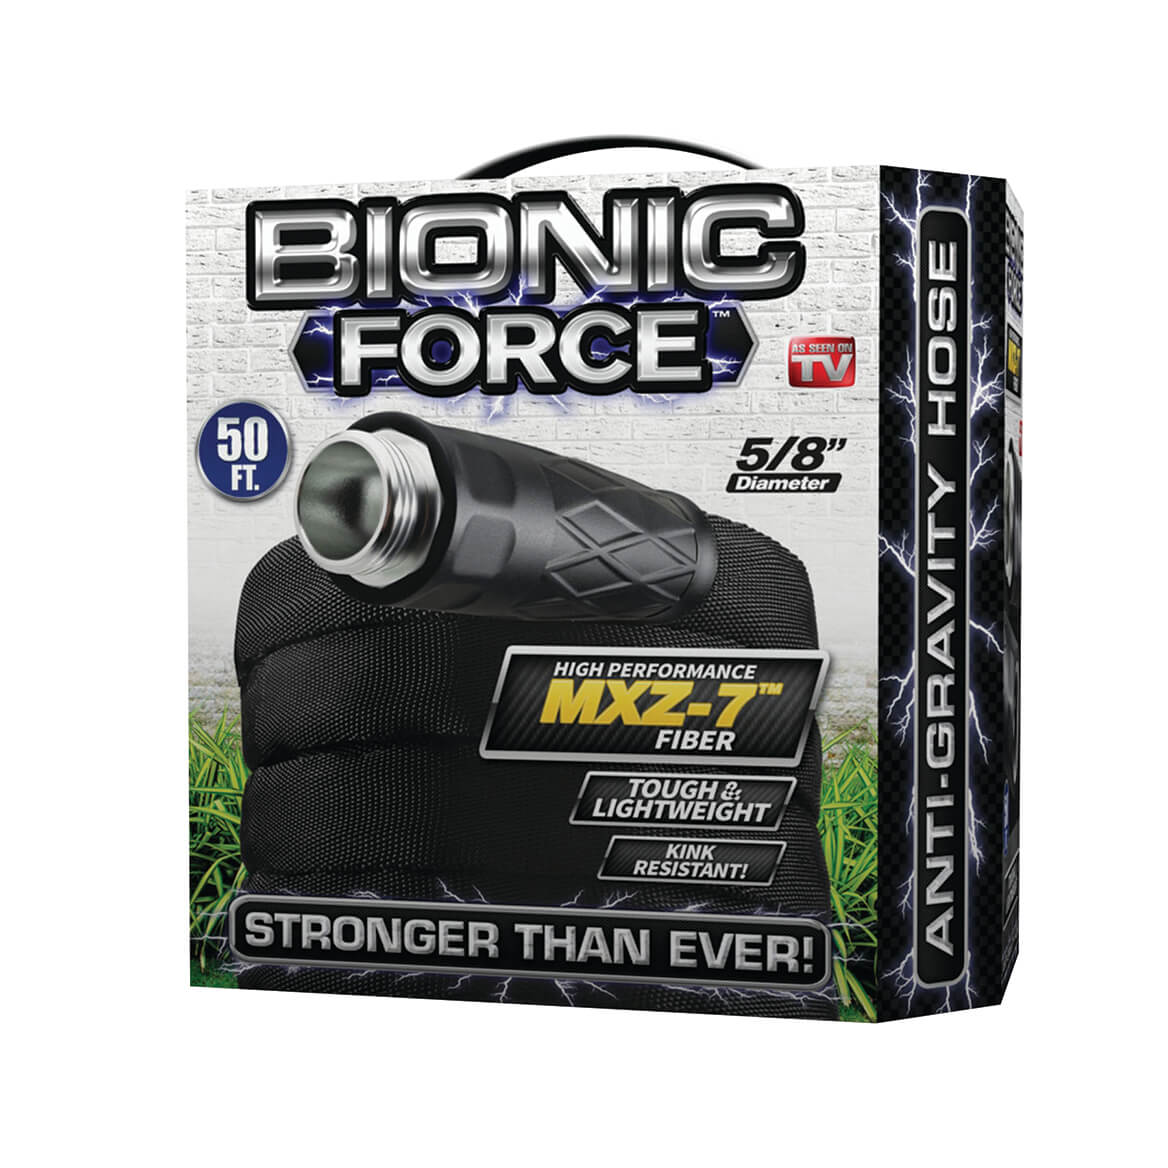 As Seen on TV Bionic Force 50 Ft.-367488